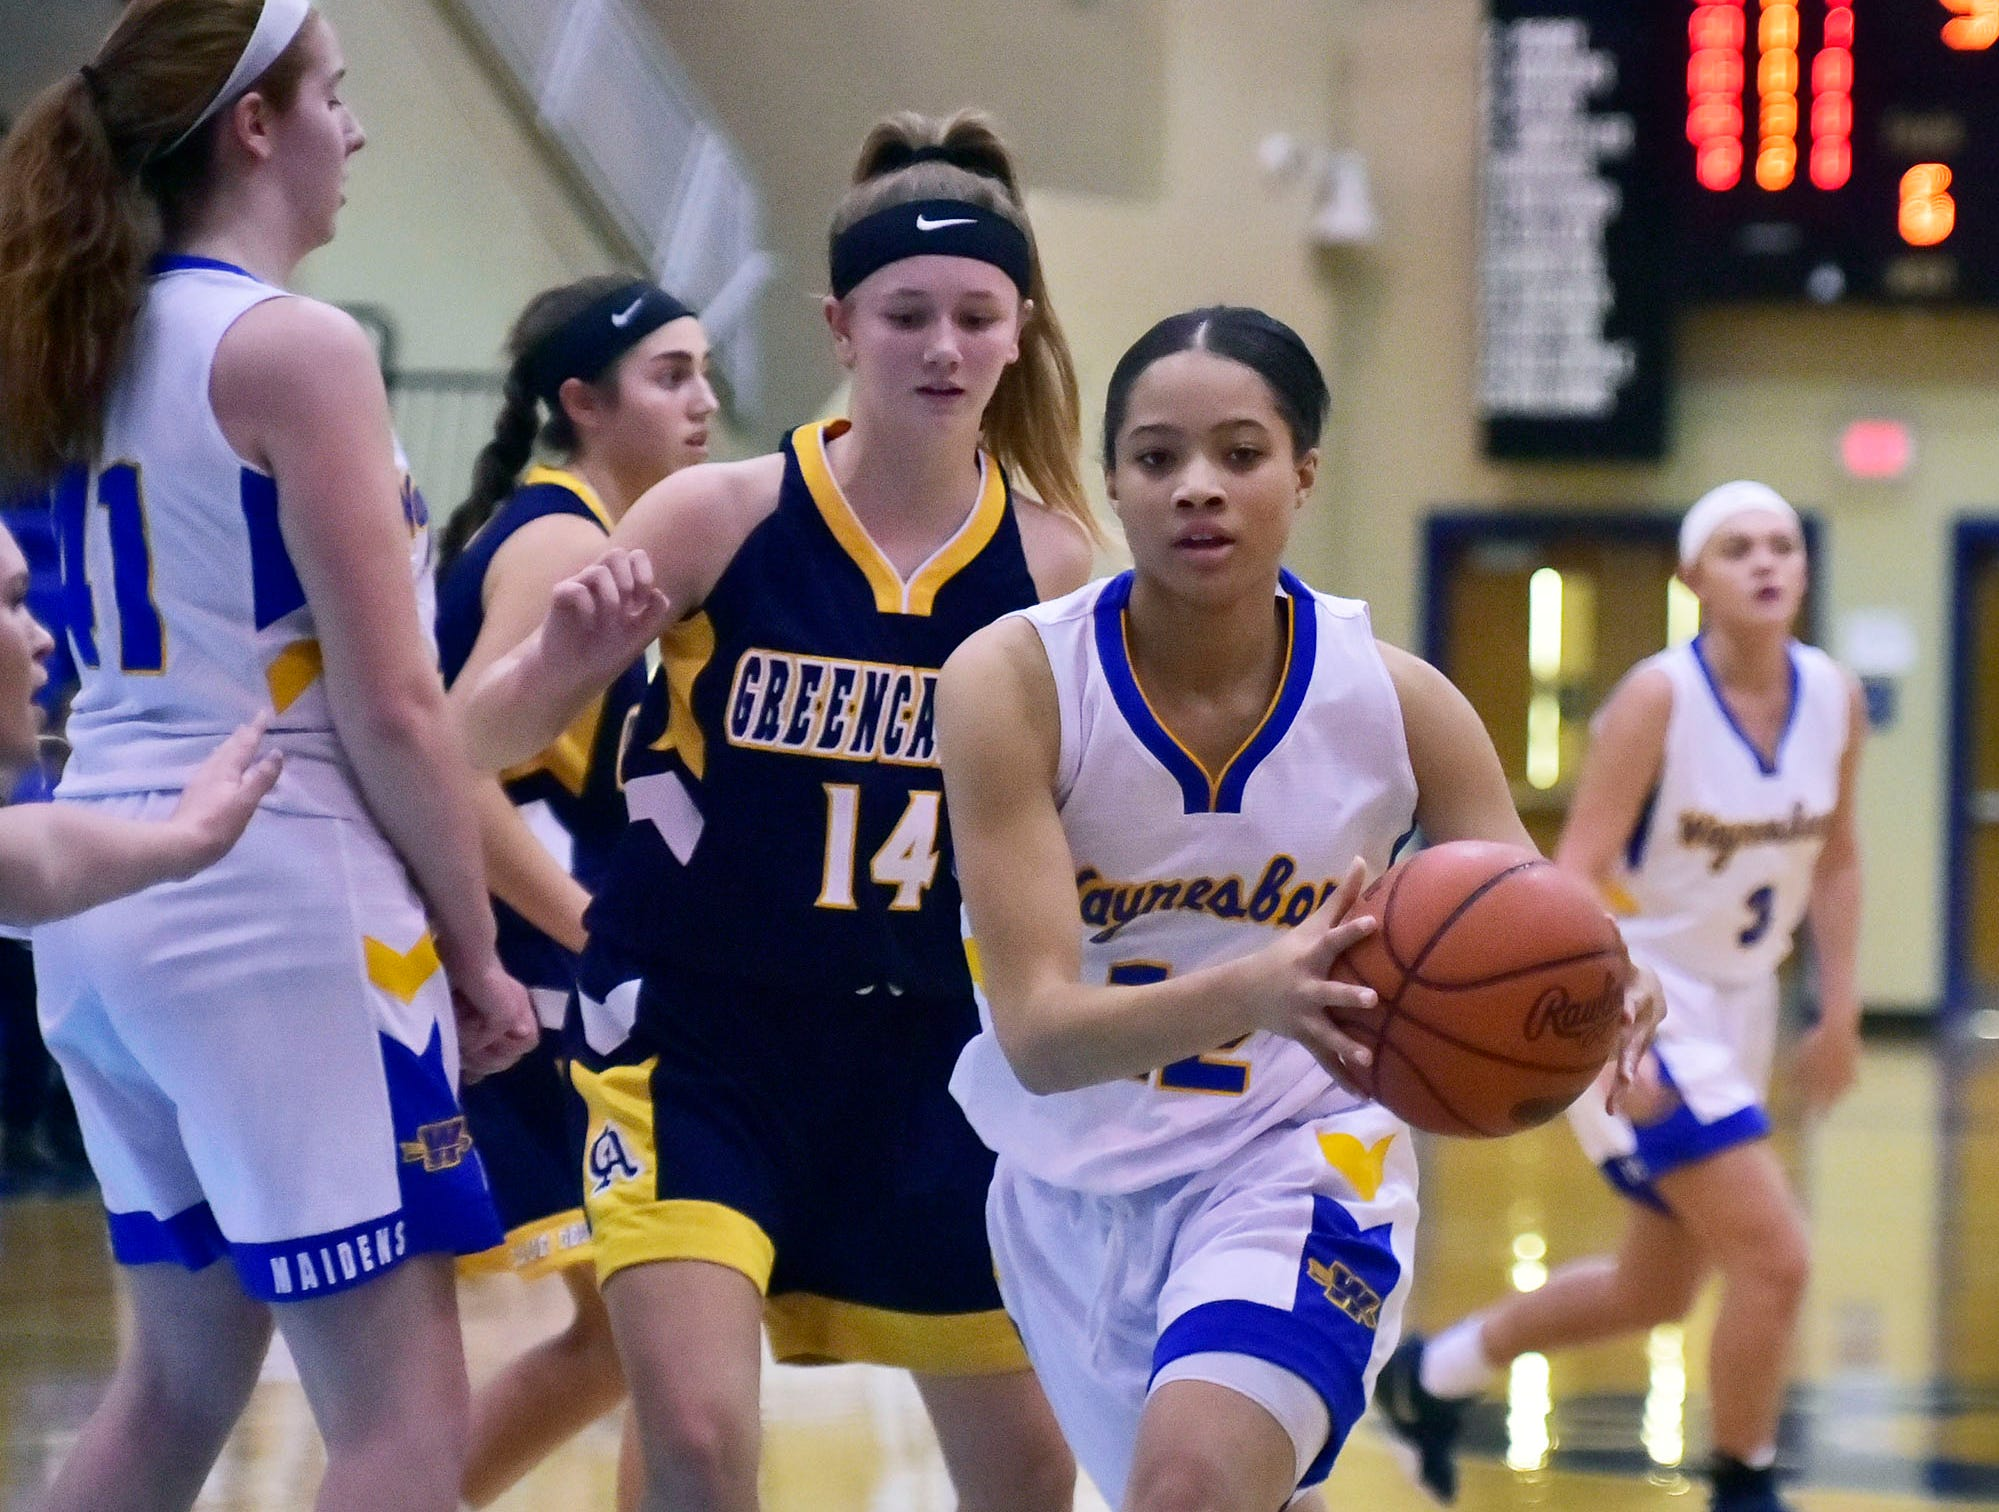 Waynesboro's Tatianna Badger passes the ball during the Greencastle game at the Franklin County Tip-Off Tournament, Friday, Dec. 7, 2018.